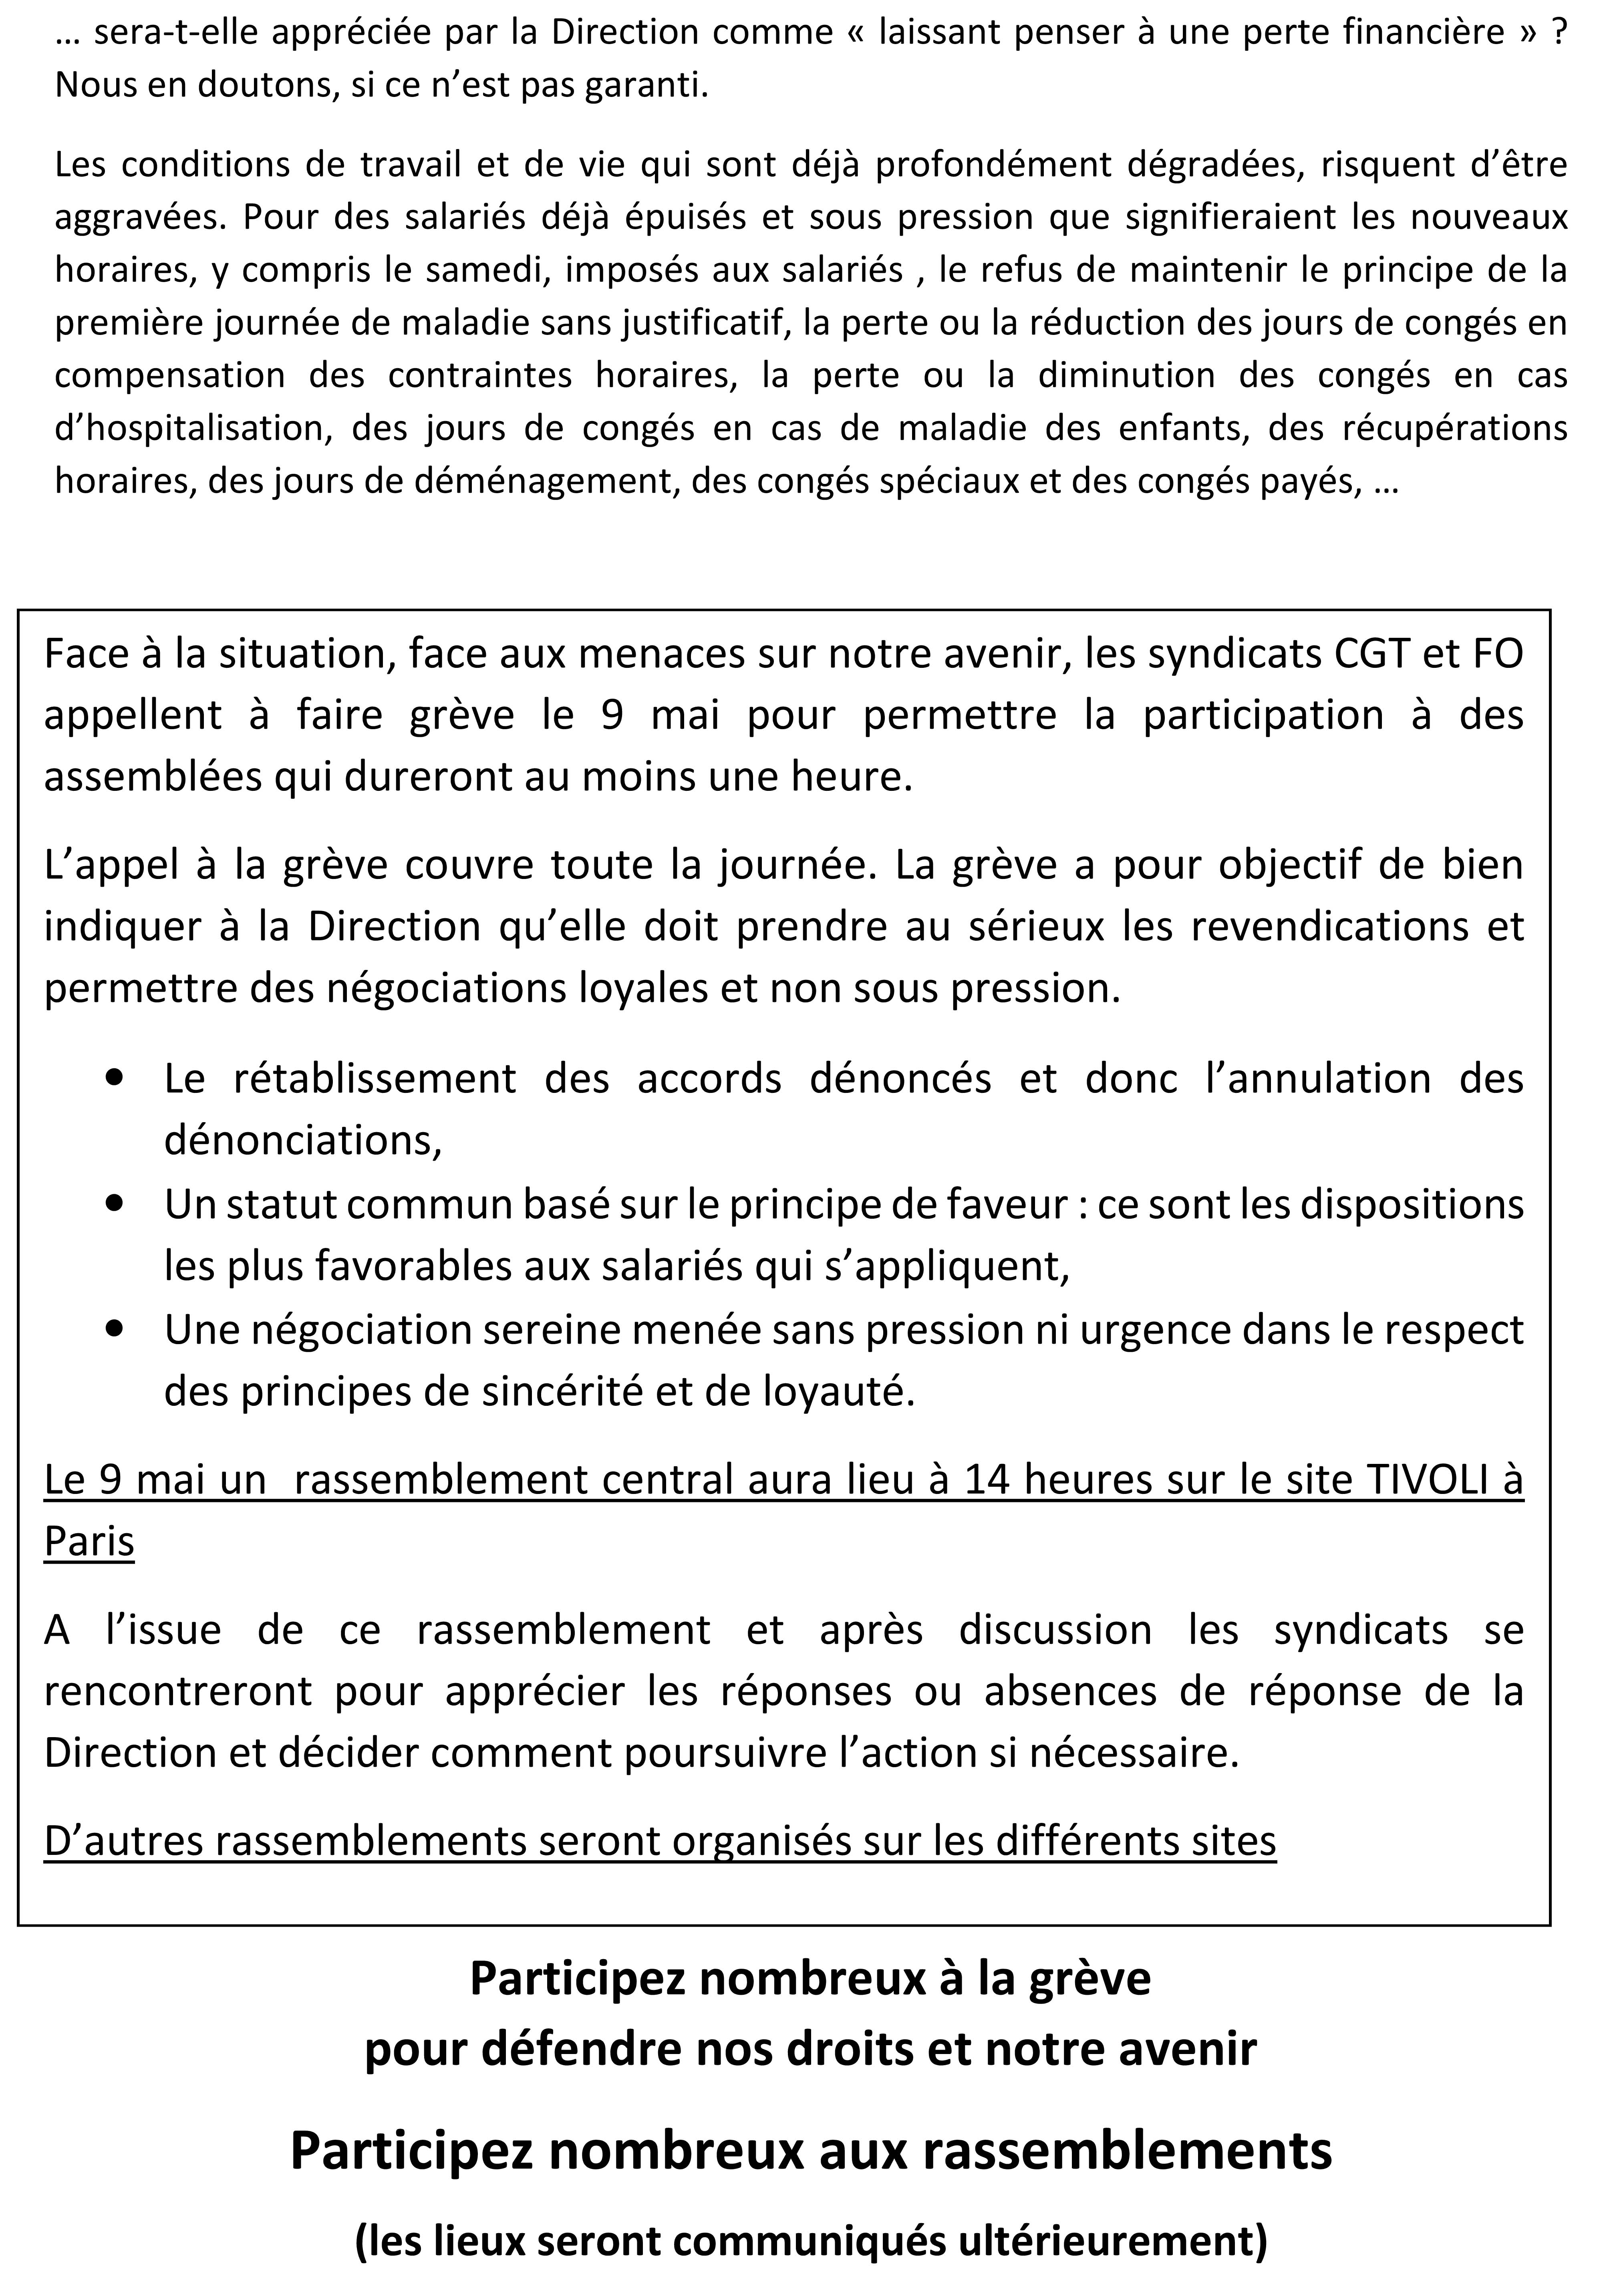 tract-commun-9-mai-page-2